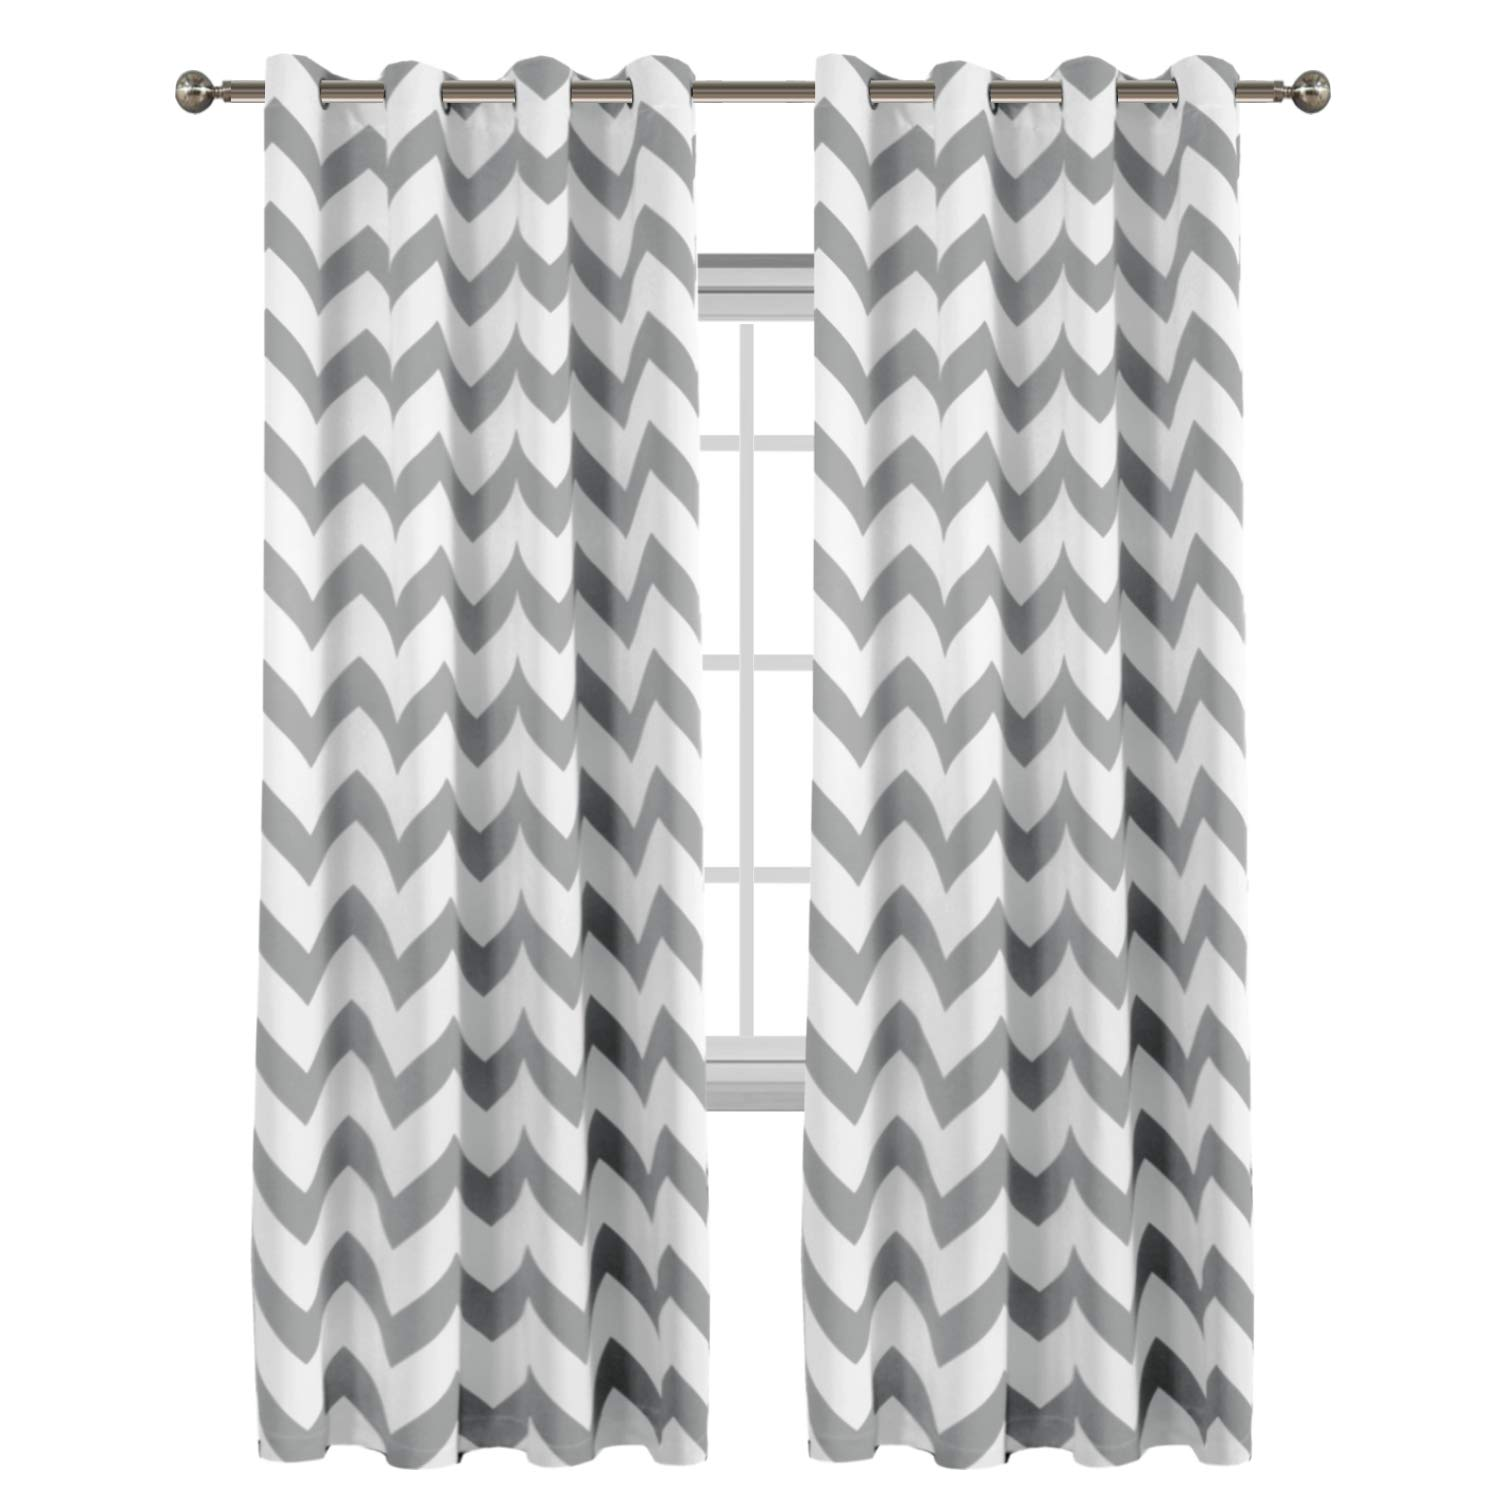 Flamingo P Traditional Window Drapes Chevron Pattern Thermal Insulated Blackout Curtain for Living Room Grommet Window Treatment Panel